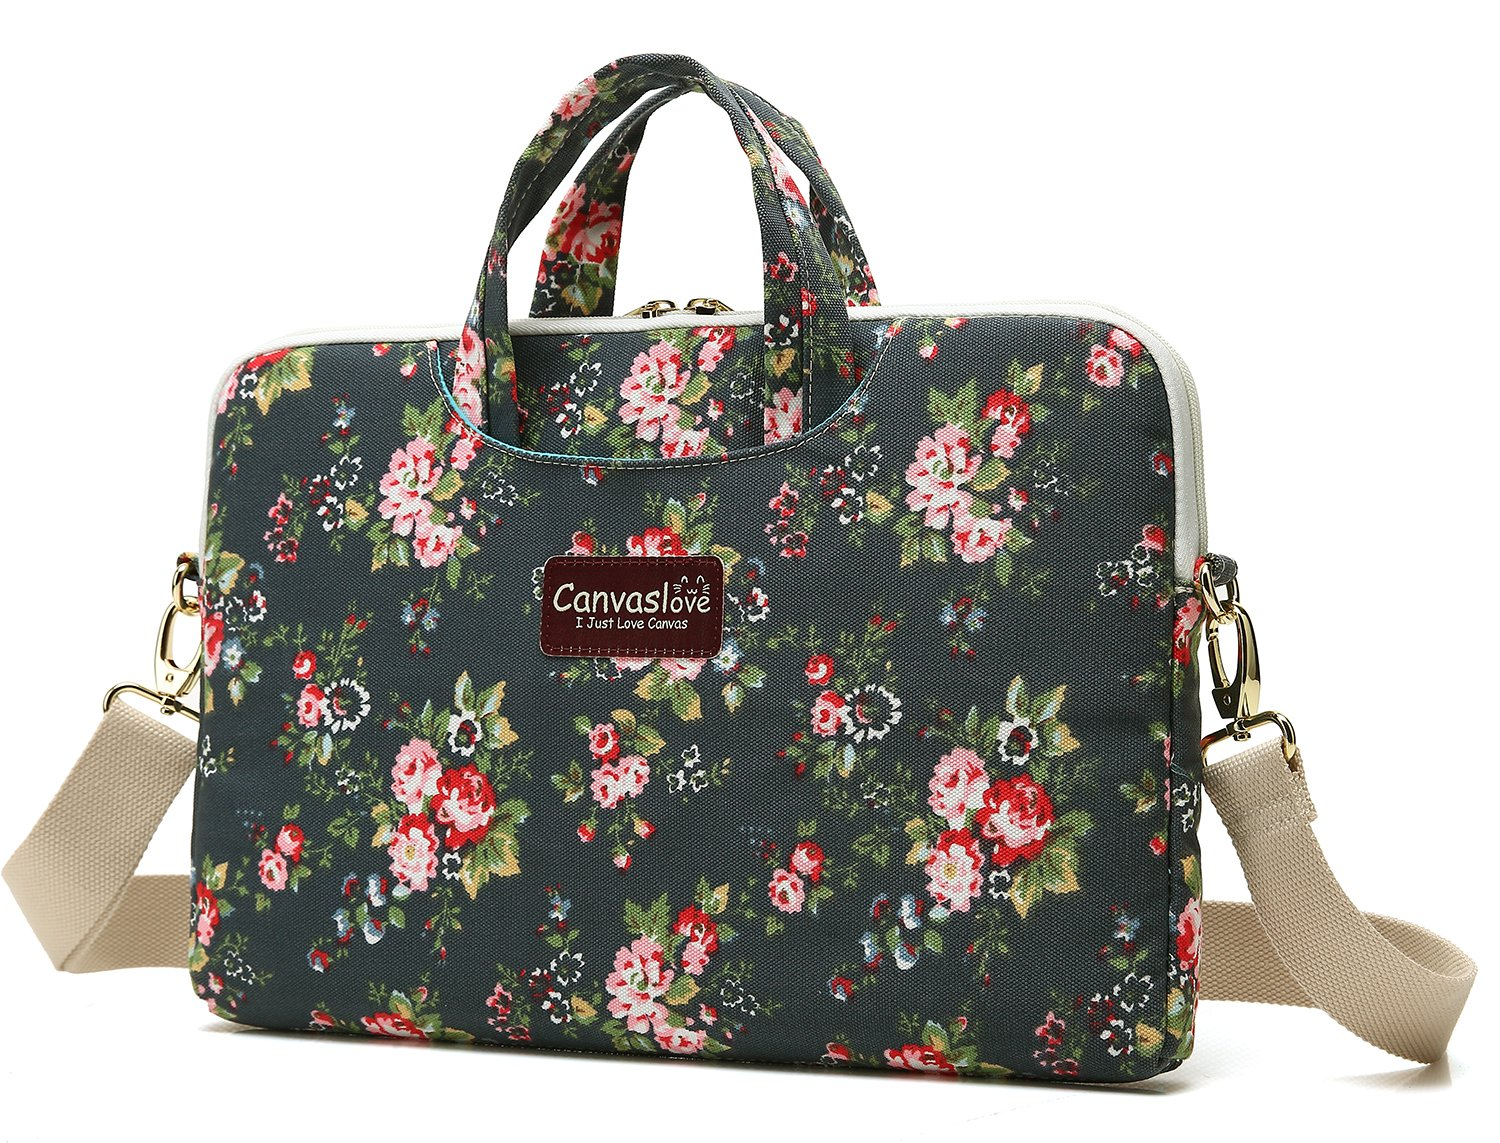 Canvaslove Flower Pattern Canvas Laptop Shoulder Messenger Bag case 14 inch 15 inch Laptop Laptop Briefcase 15.6 inch